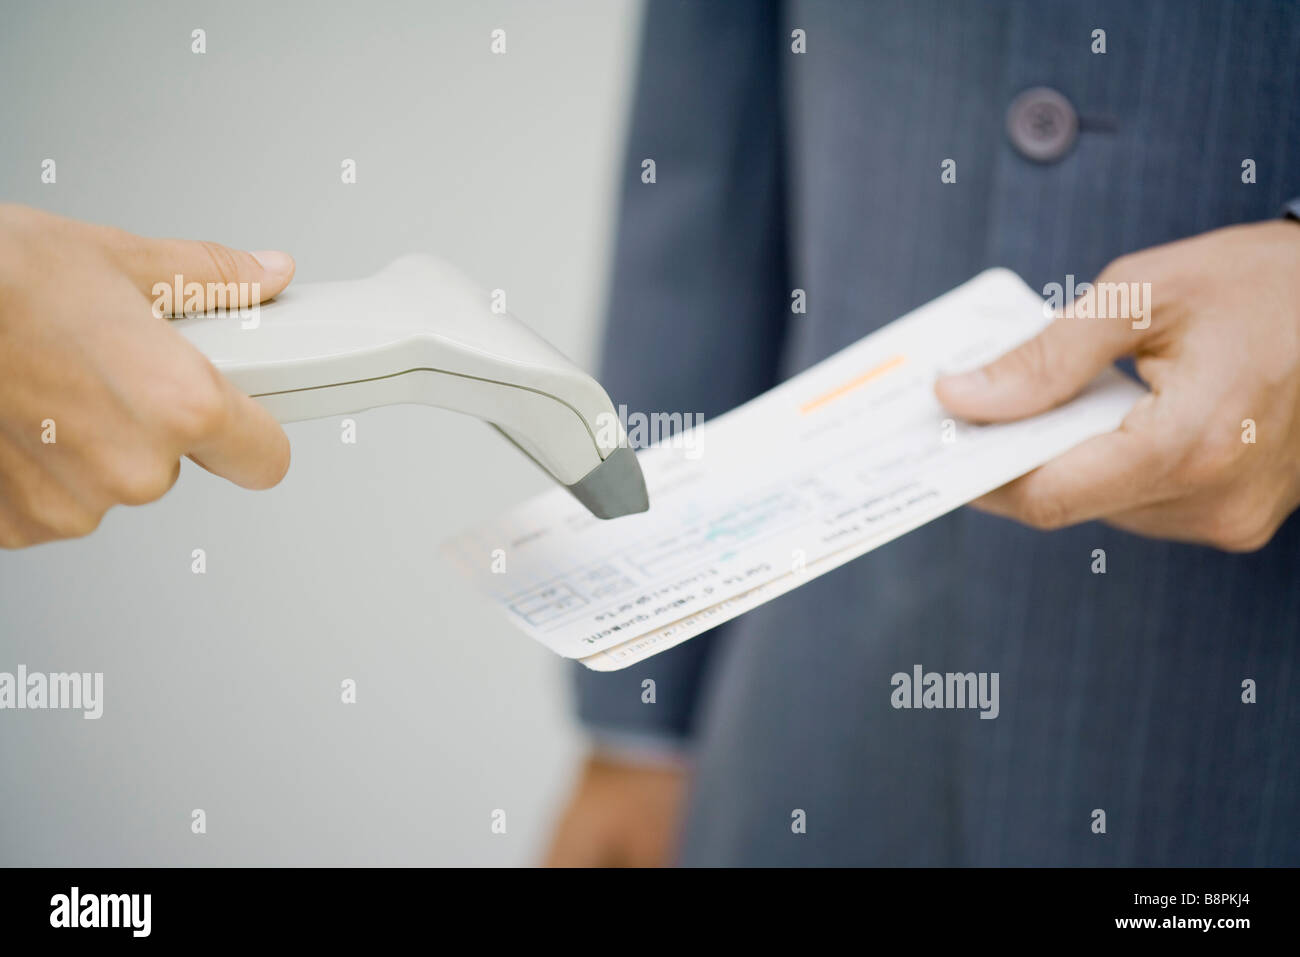 Man's plane tickets being scanned - Stock Image